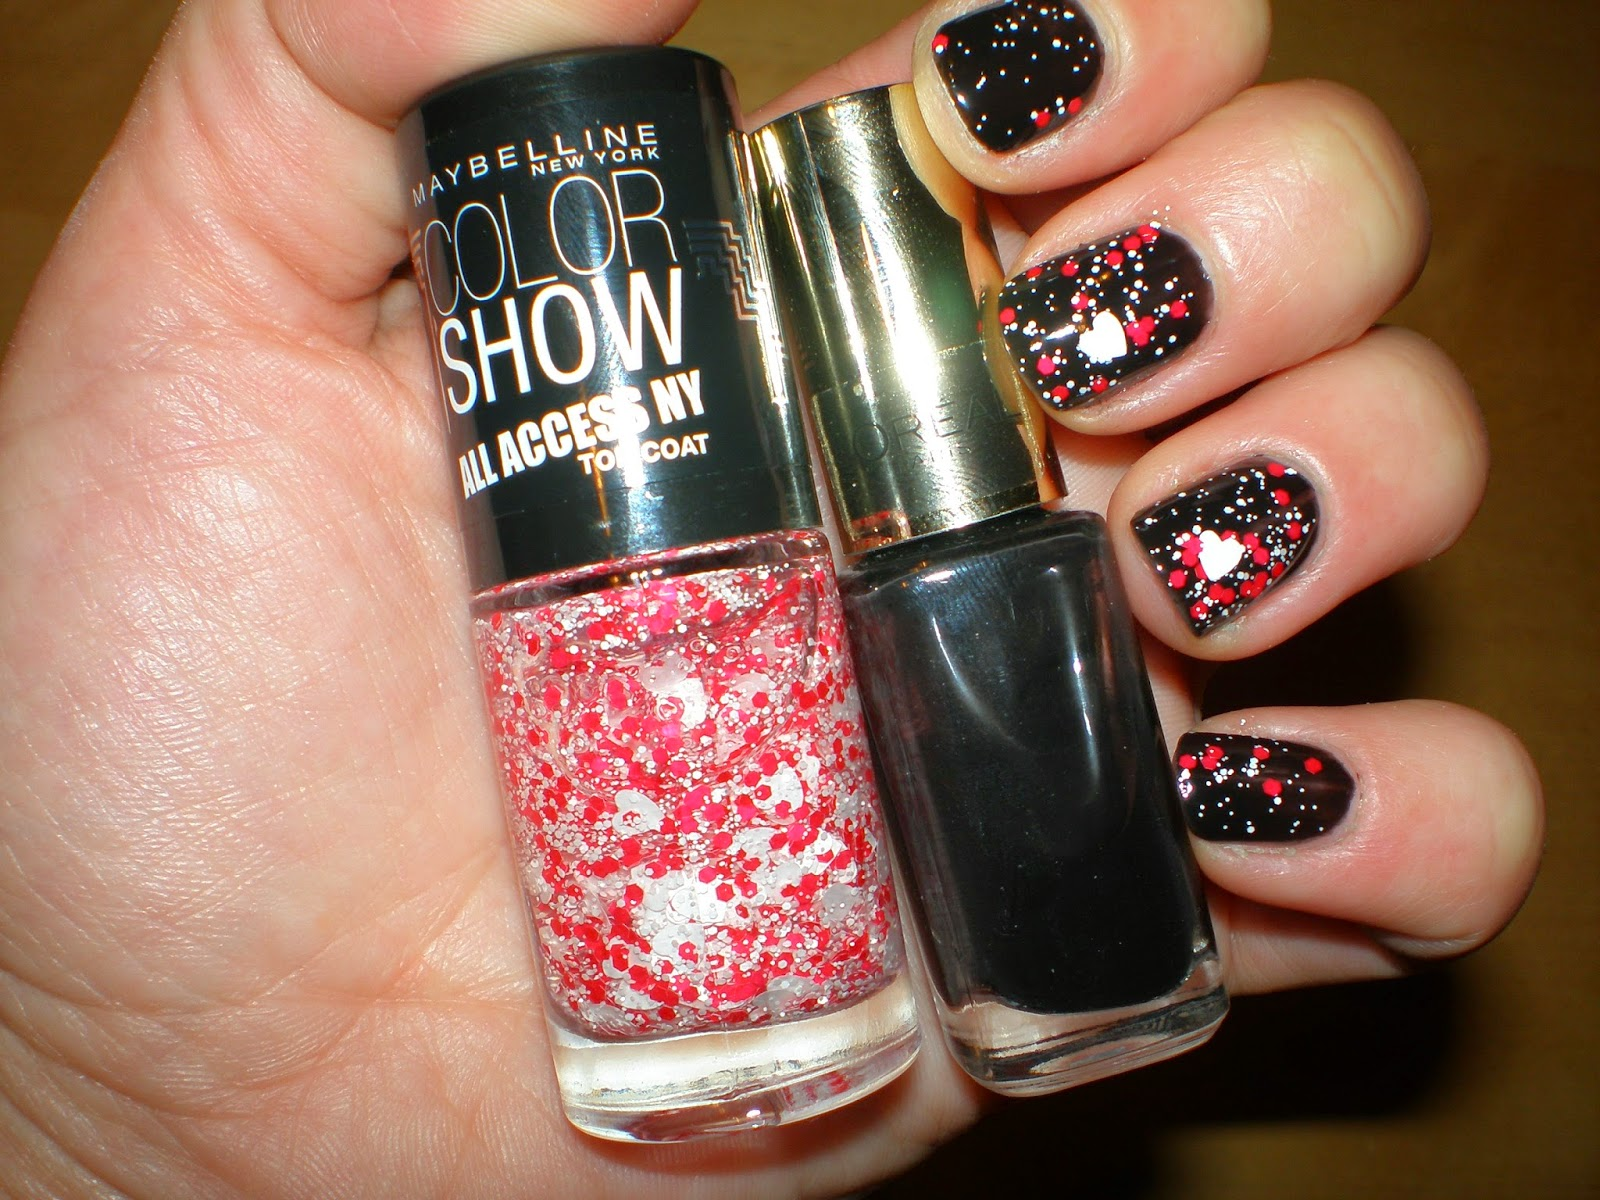 My manicure using Maybelline and L'oreal nail polishes